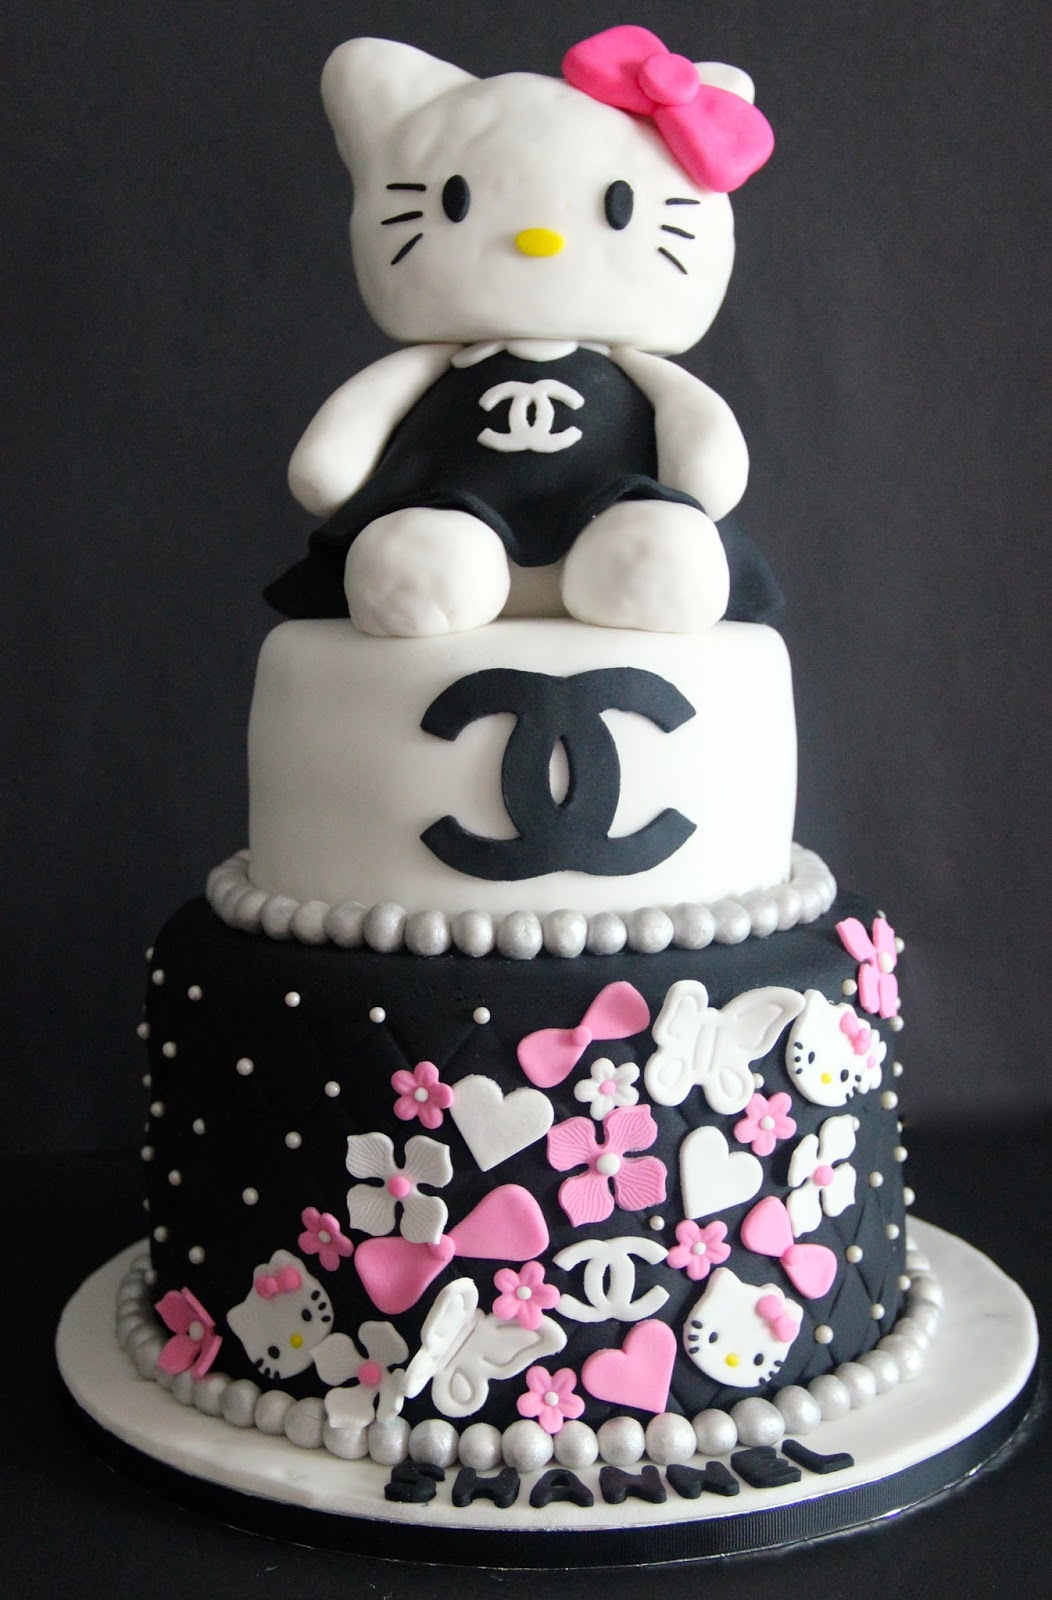 Temptations Chanel theme cake